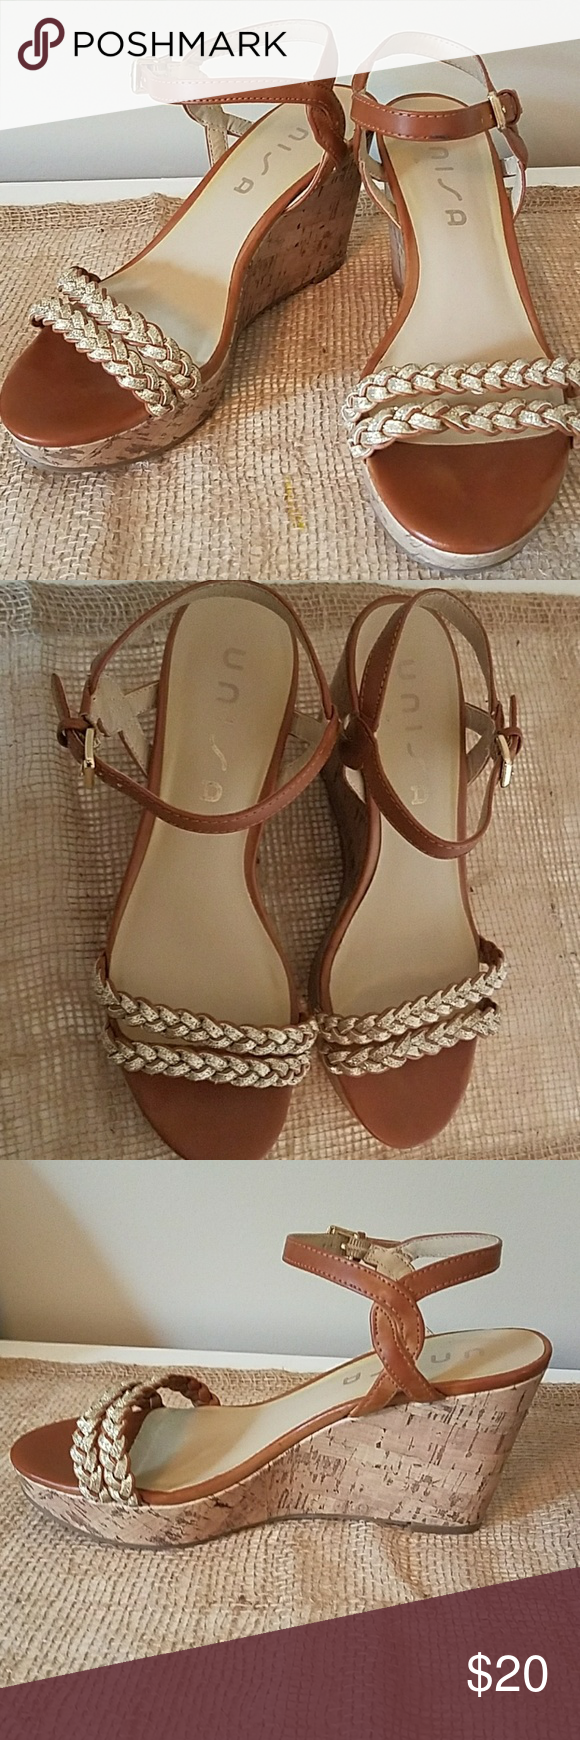 afac42fd687e3e Unisa Brown   Gold Sparkle Wedge Sandals Super cute wedge sandals. The  braids are a really sparkly gold. The side buckle around the ankle is gold  also.